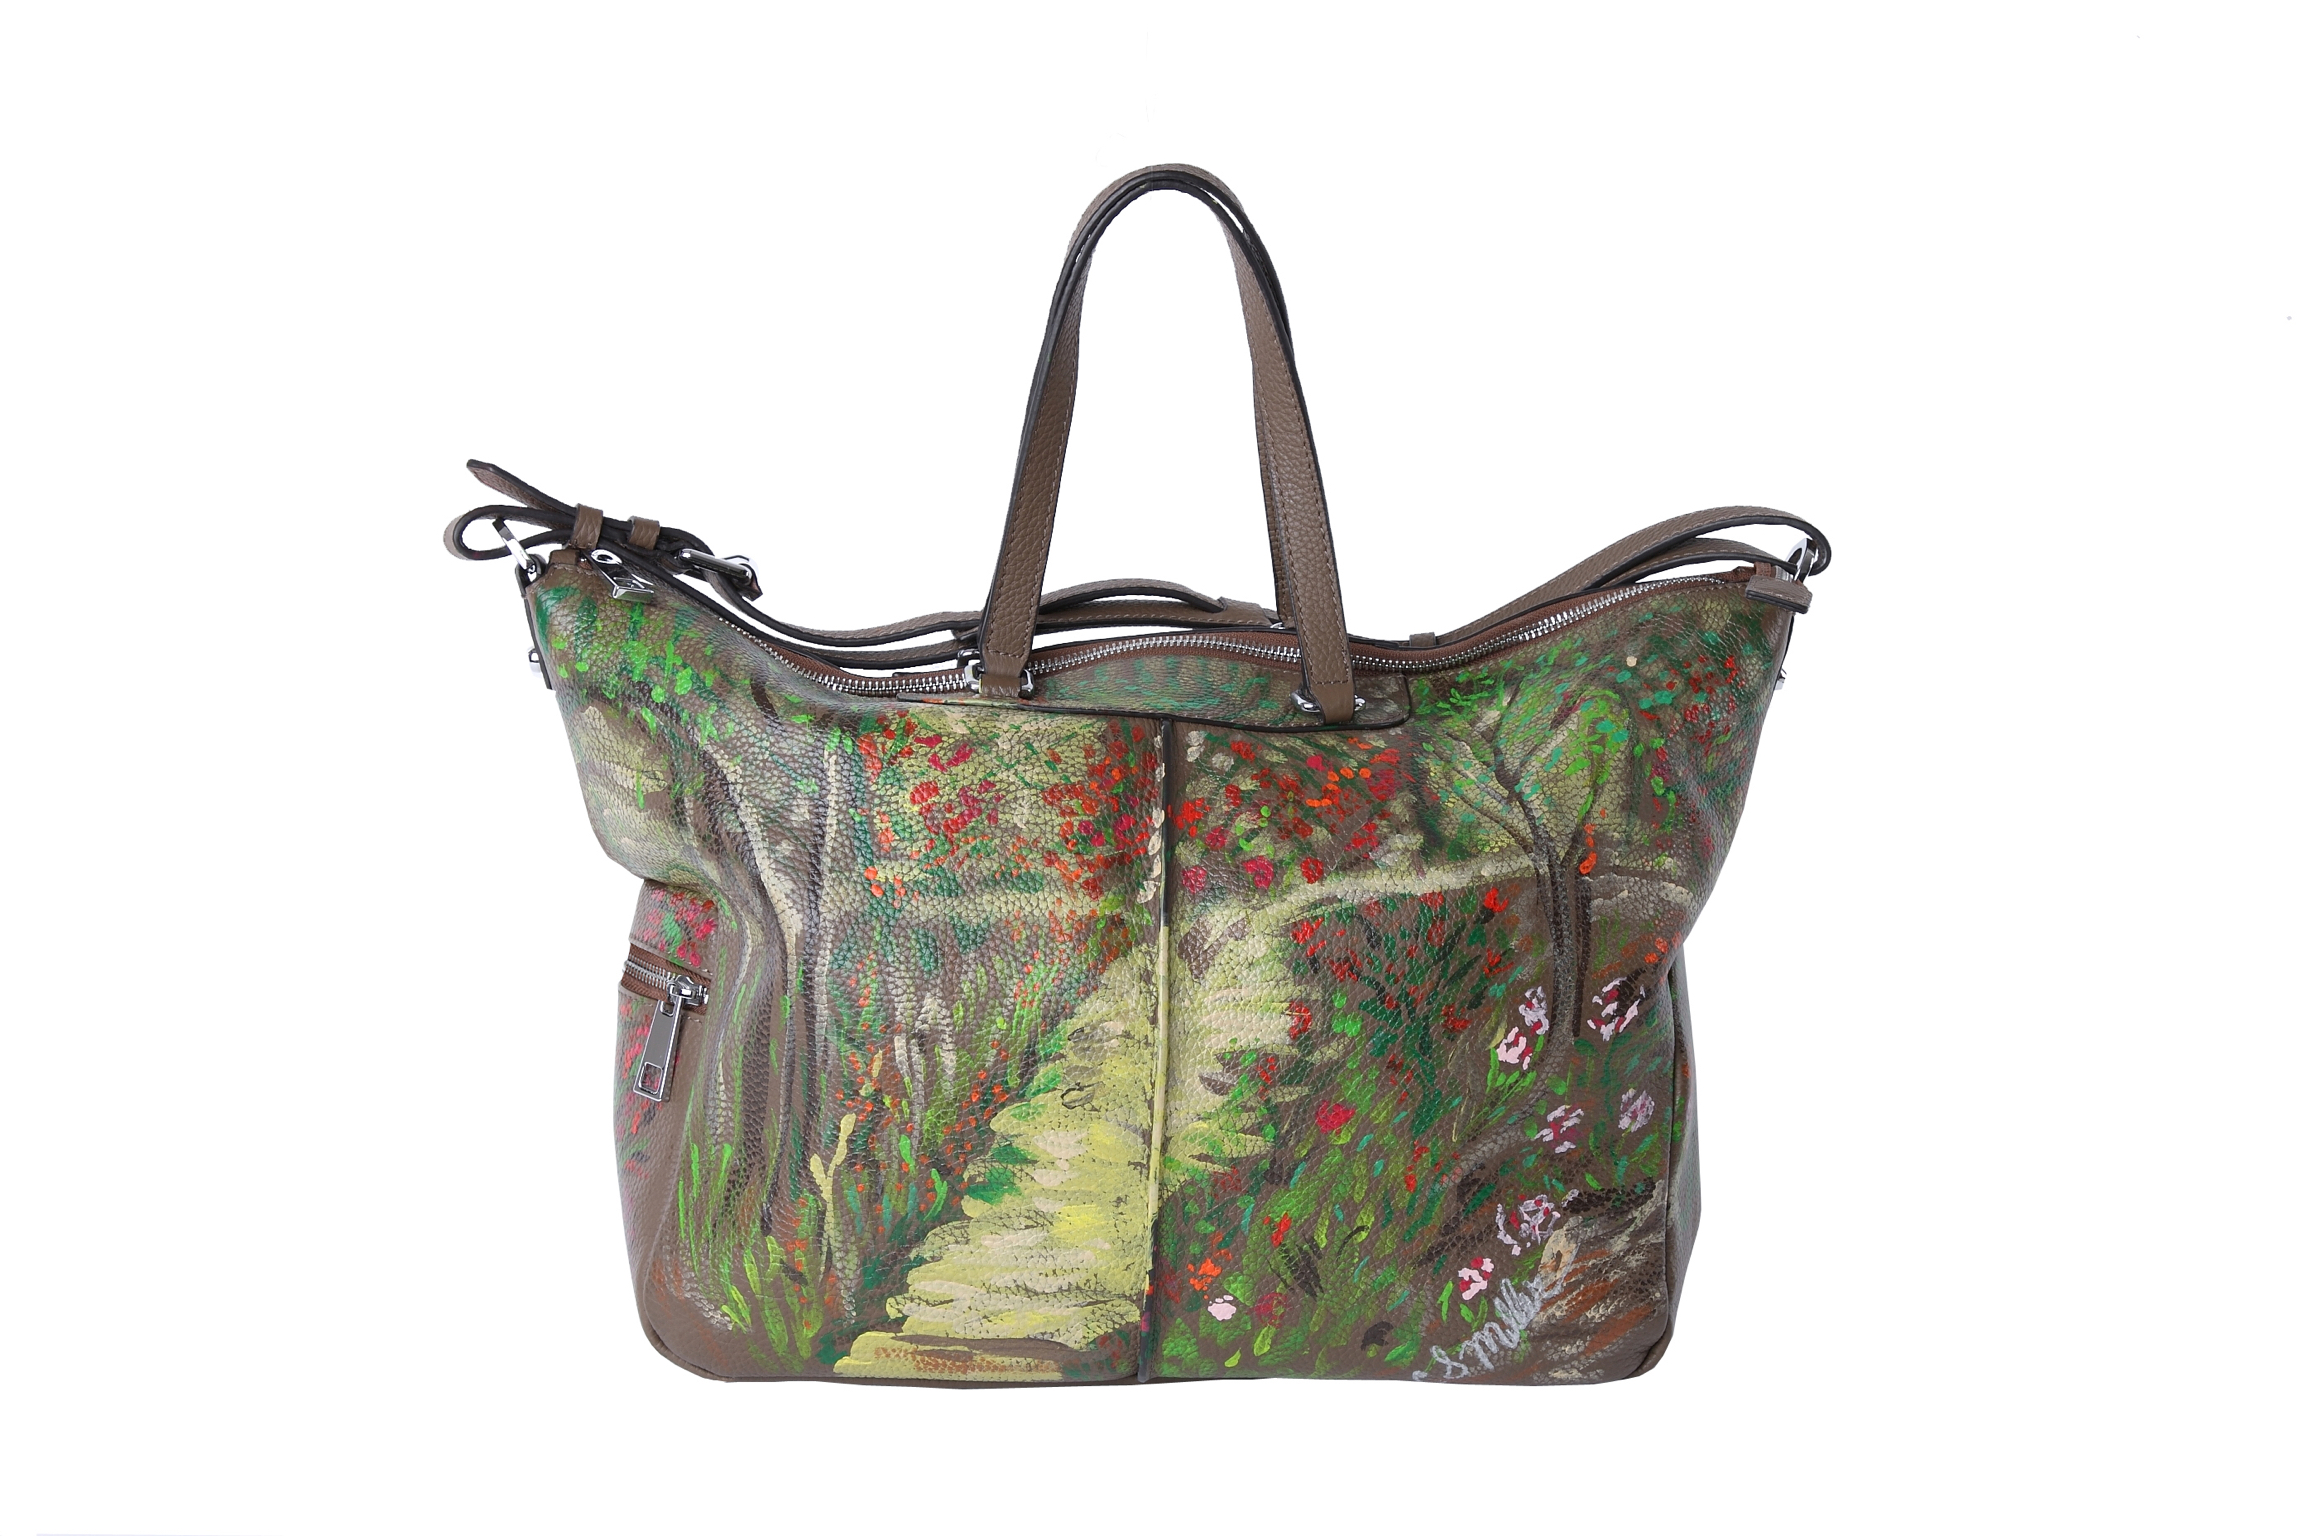 Monet Inspired Hand Painted Leather Bag